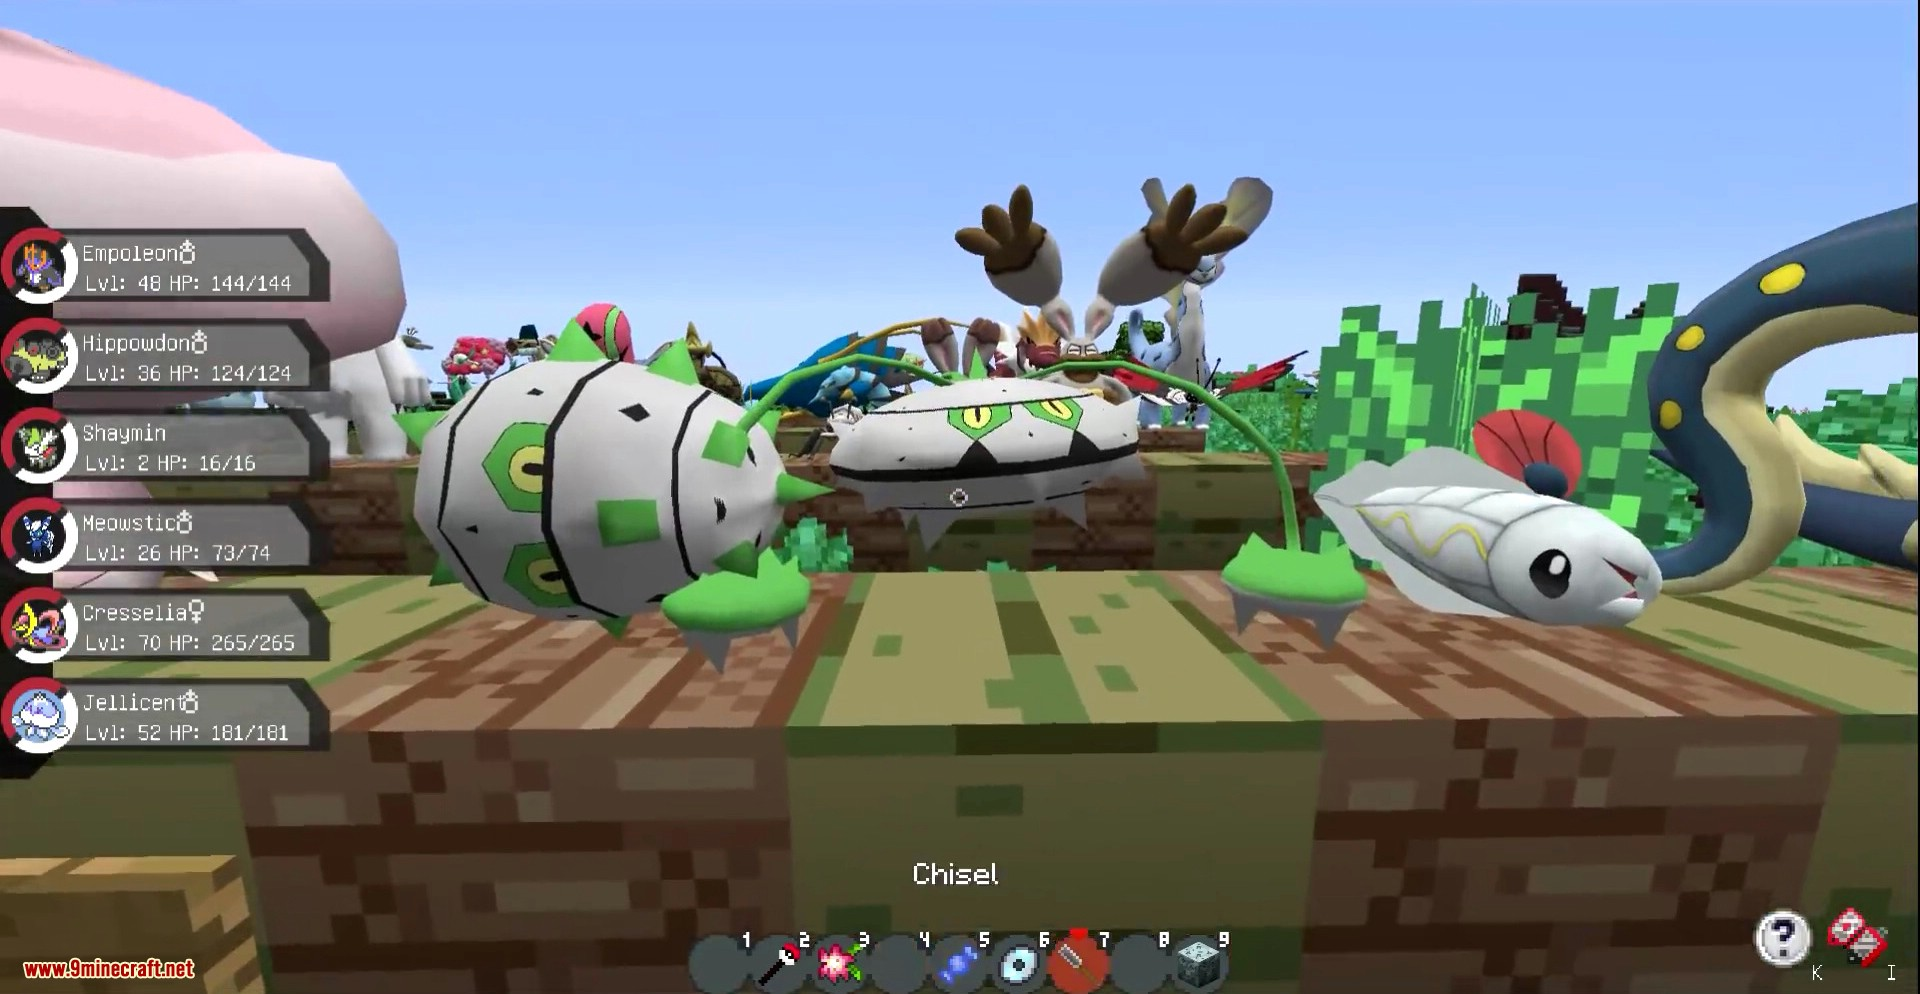 Pixelmon Mod Screenshots New 20